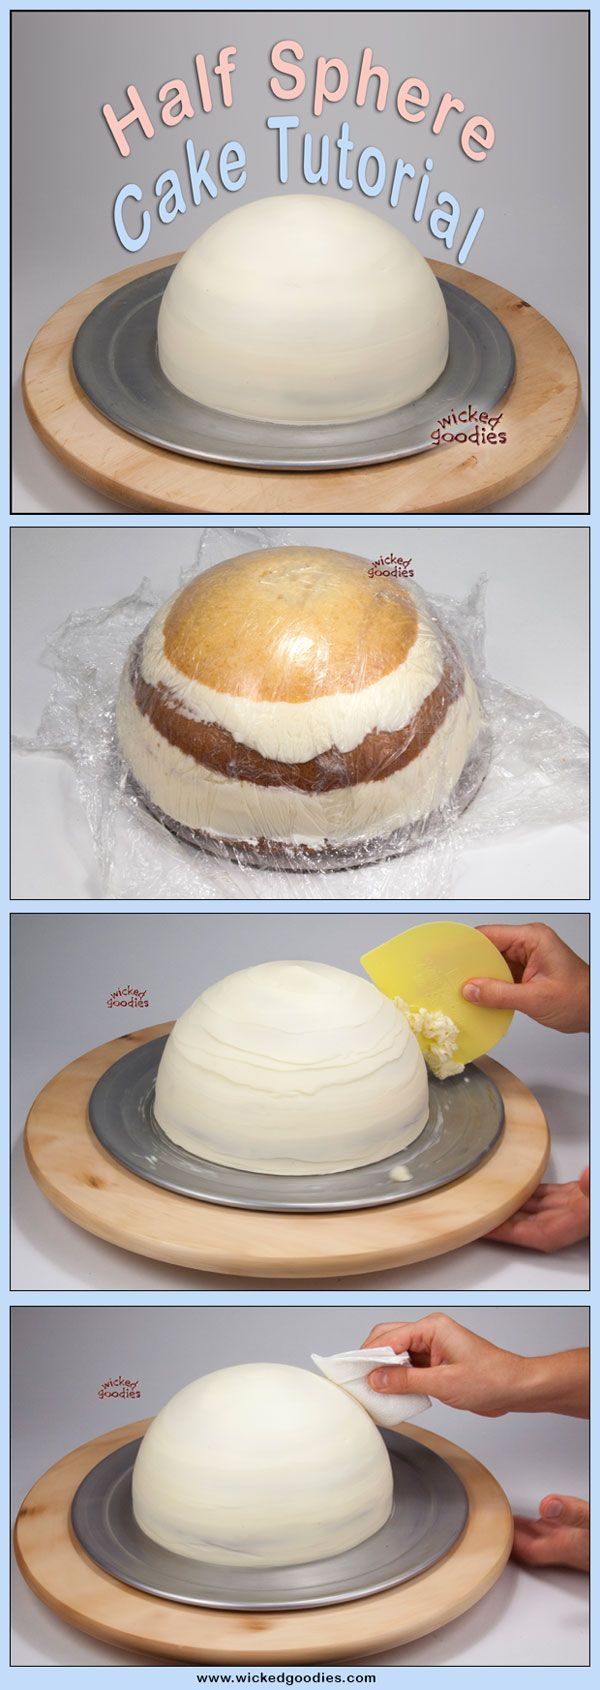 How to Make a Half Sphere Cake | Cake tutorial, Wicked and ...